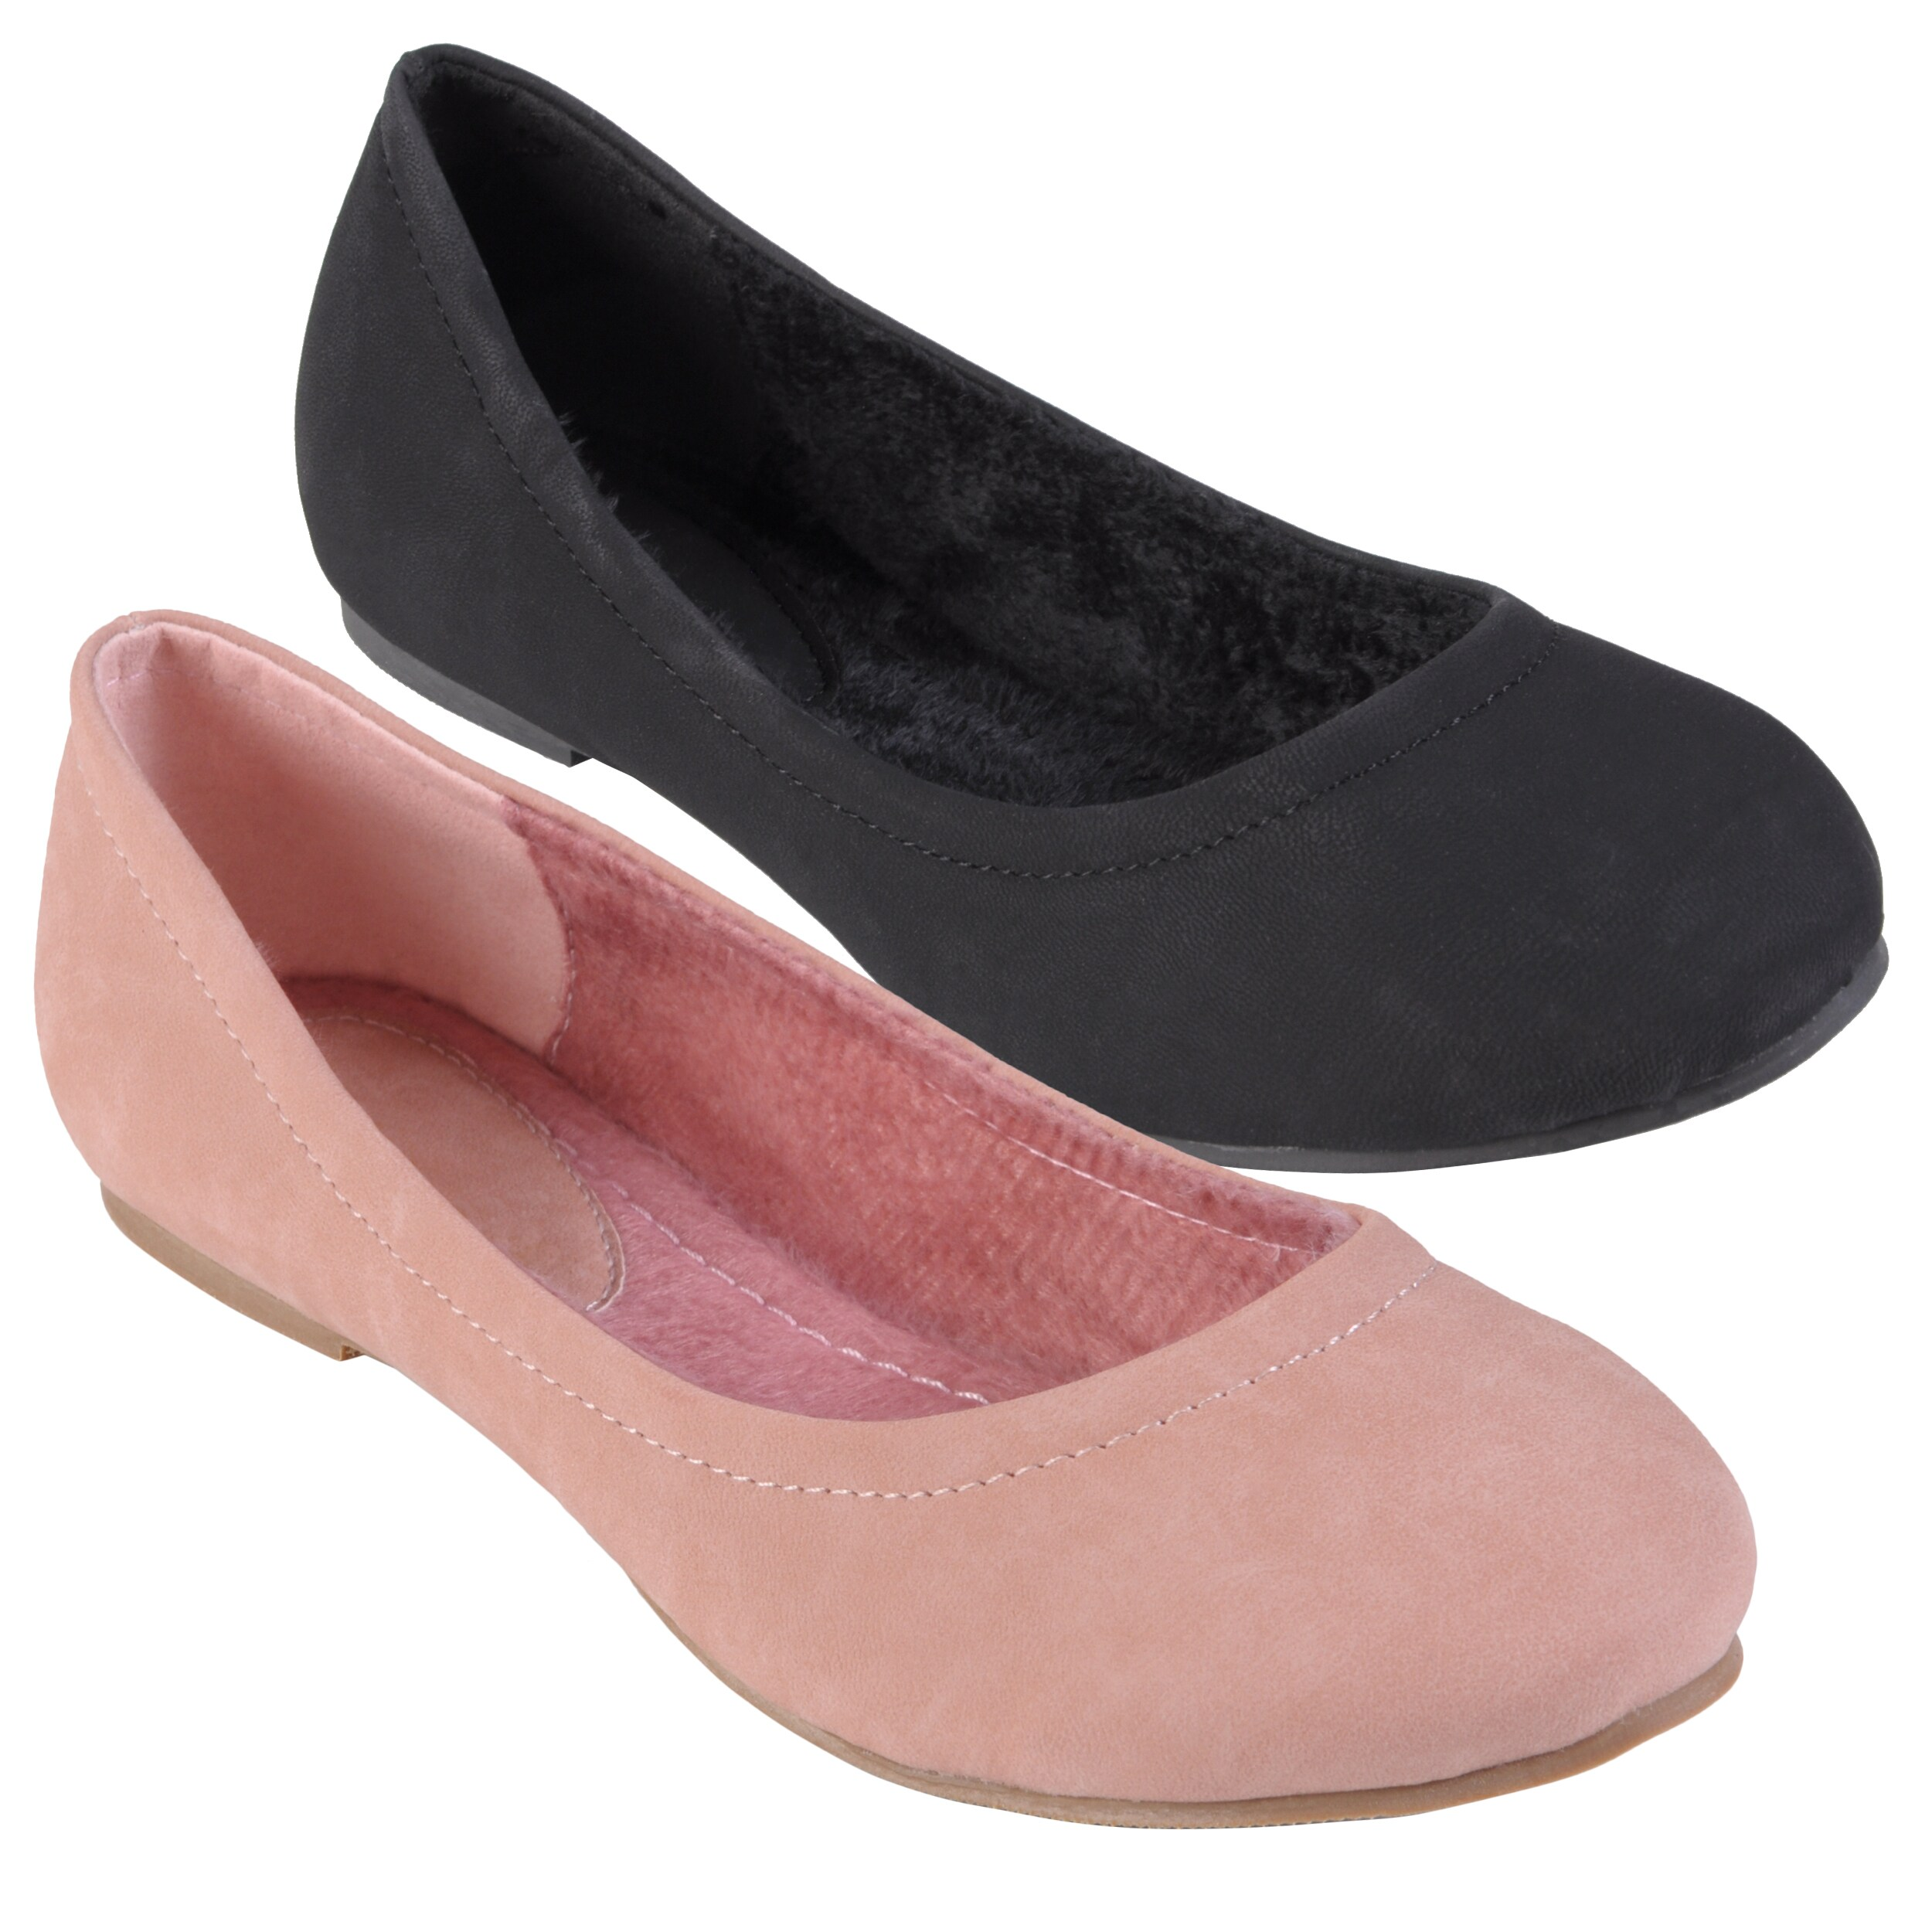 Journee Collection Women's 'Eileen-10' Faux Leather Round Toe Flats